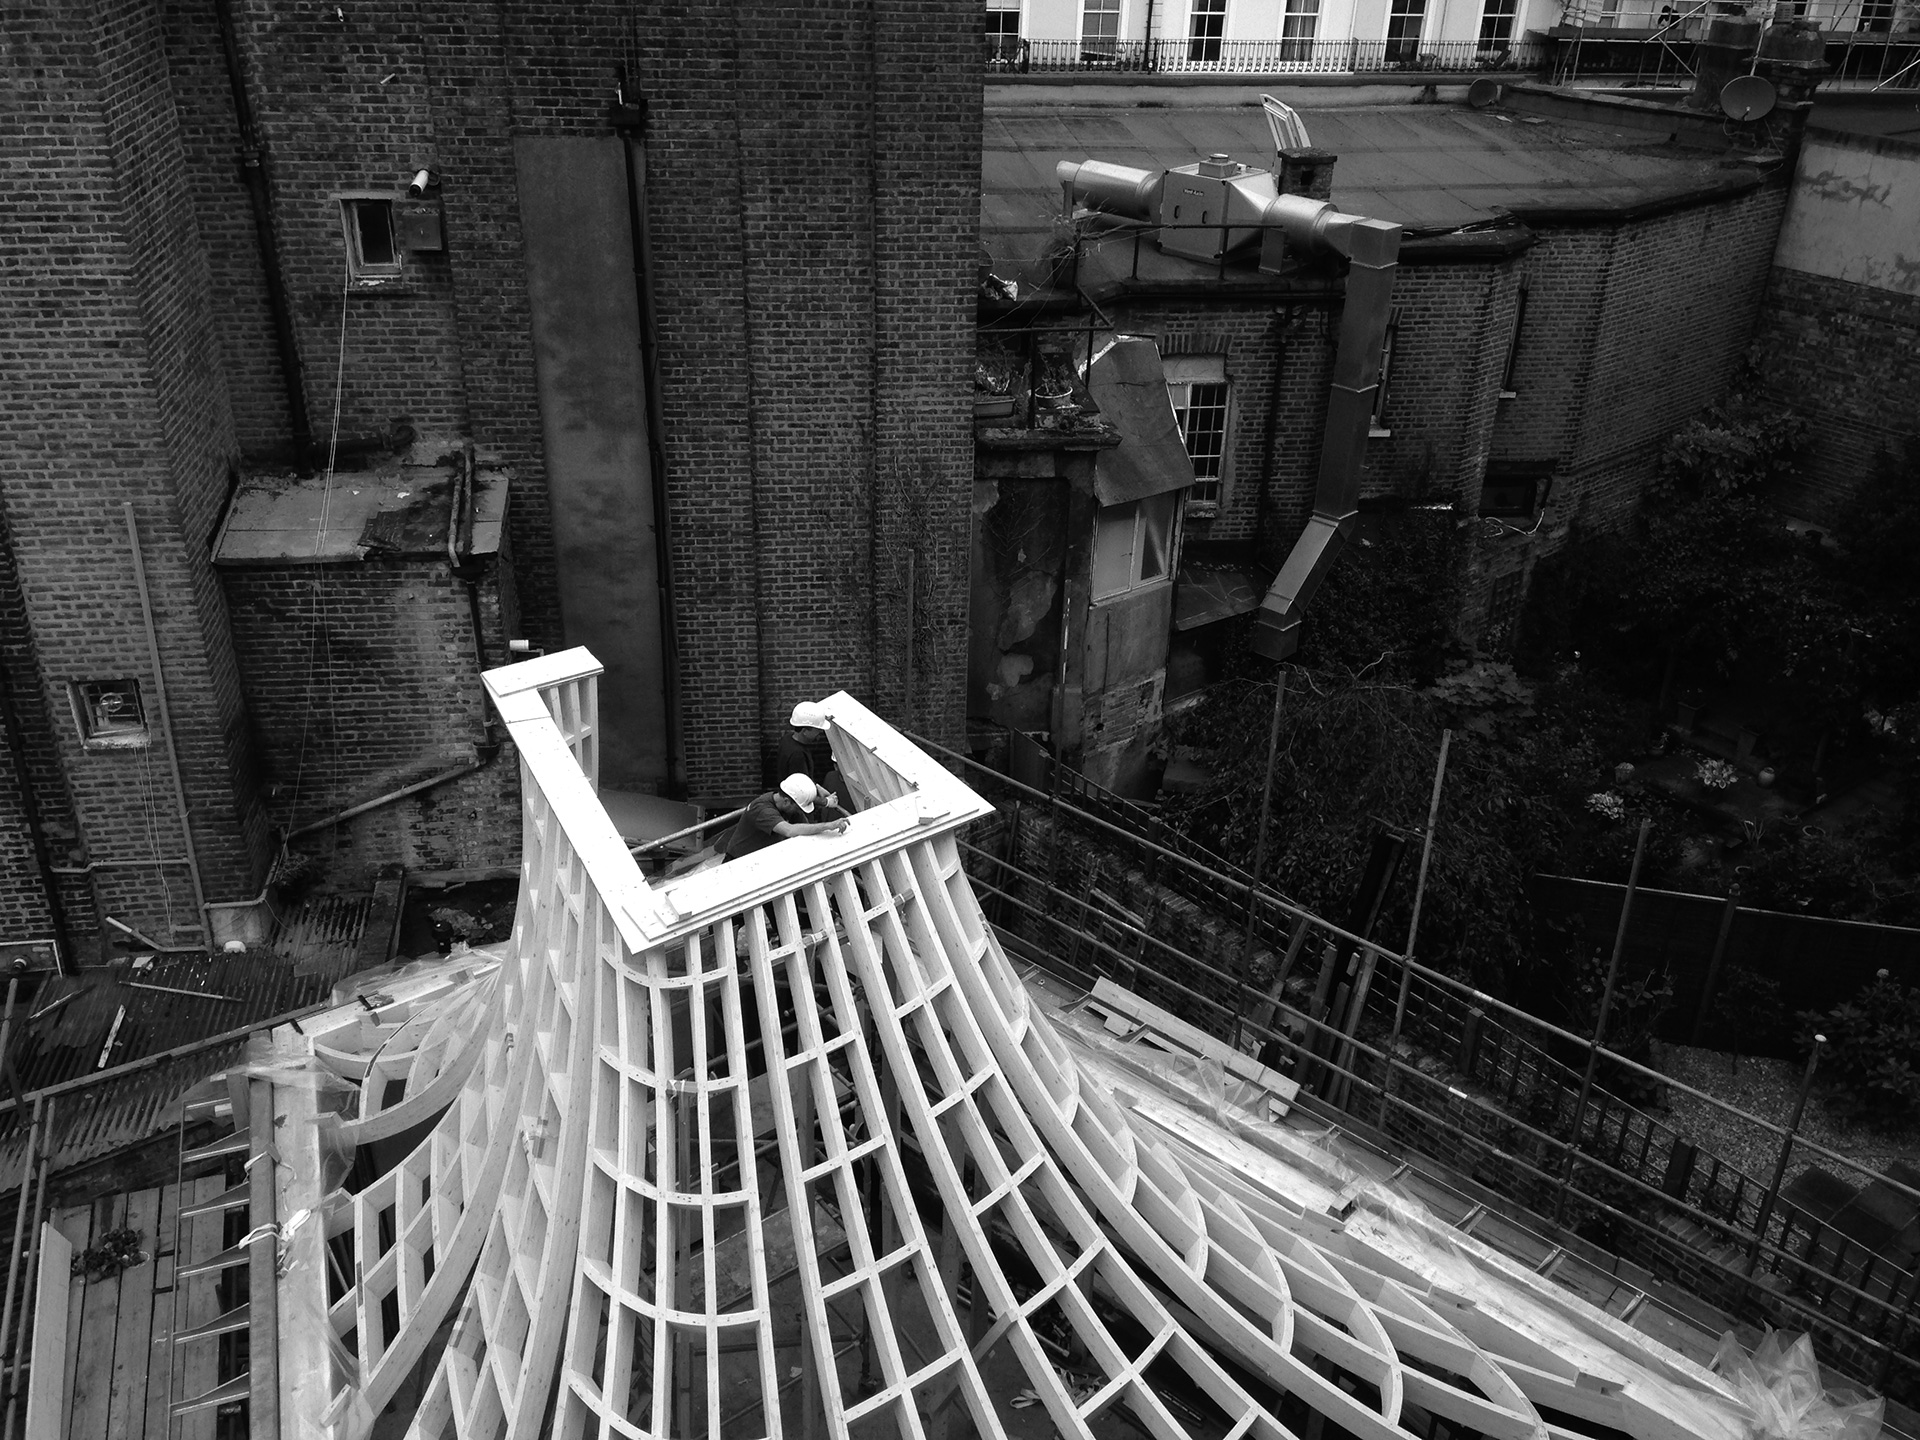 Glulam roof installation | House in a Garden, London by Gianni Botsford Architects | STIRworld